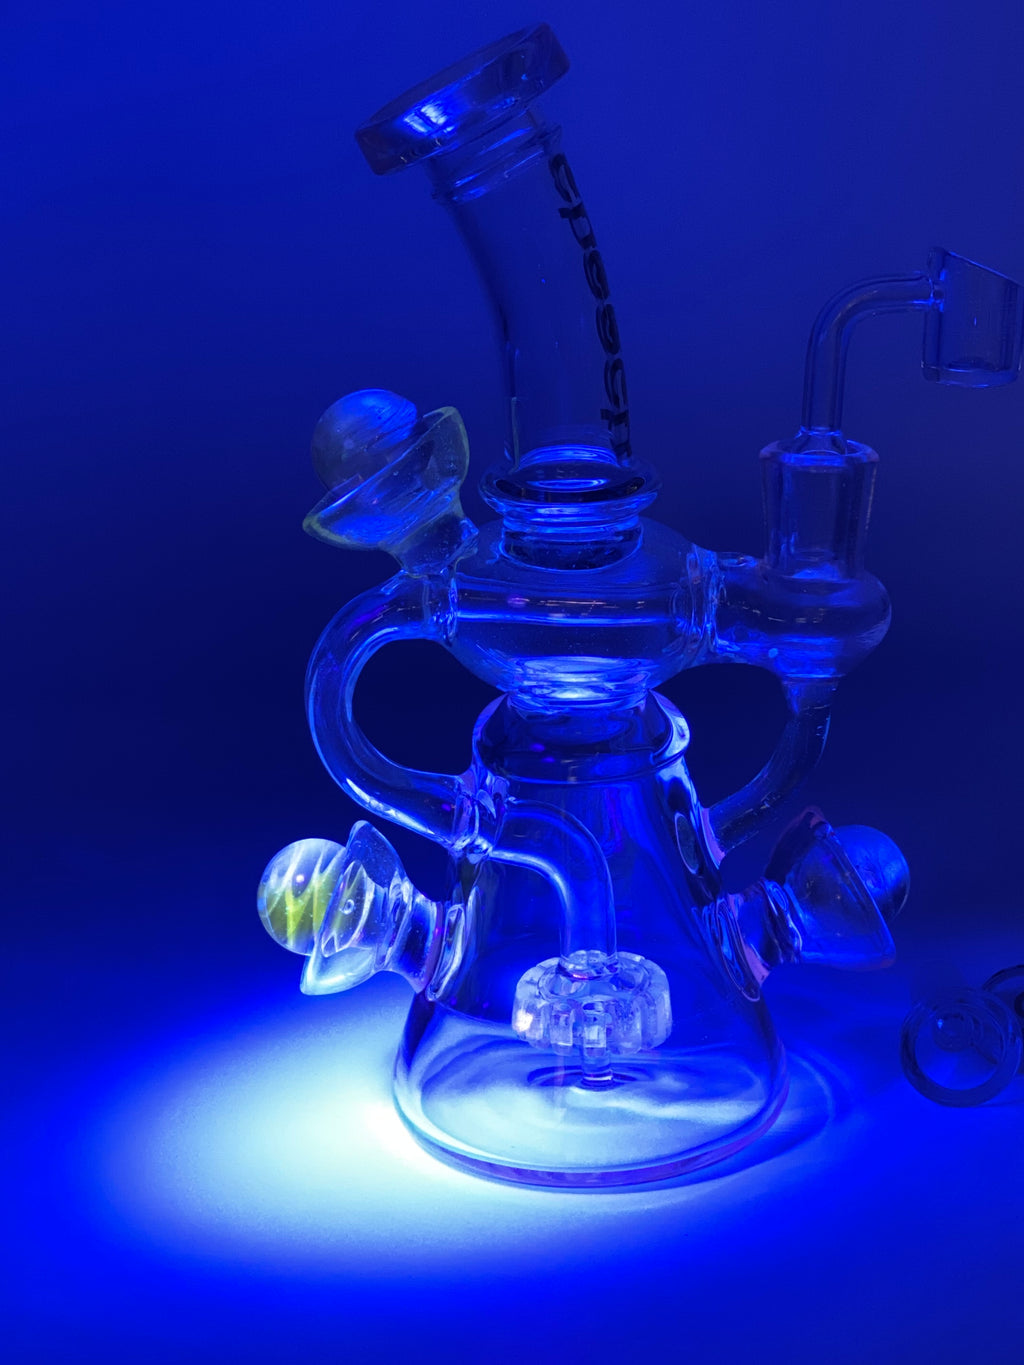 Cheech Glass Full UV Klein Recycler - Smoke Country - Land of the artistic glass blown bongs